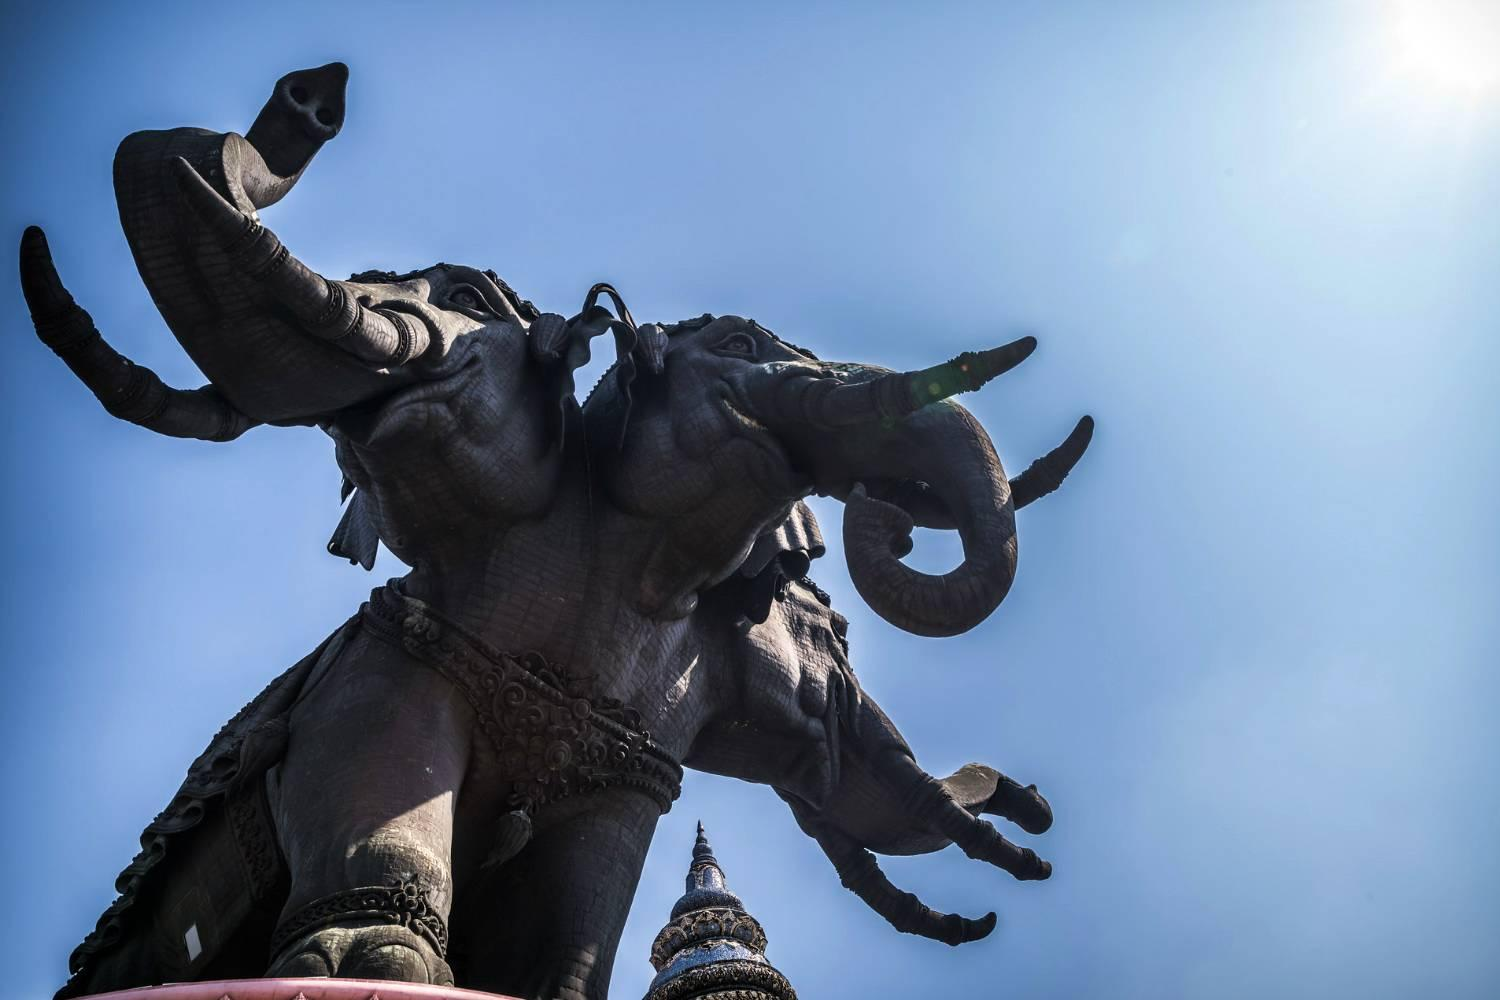 three-headed elephant from the Erawan Museum in Bangkok depicted against a blue sky.